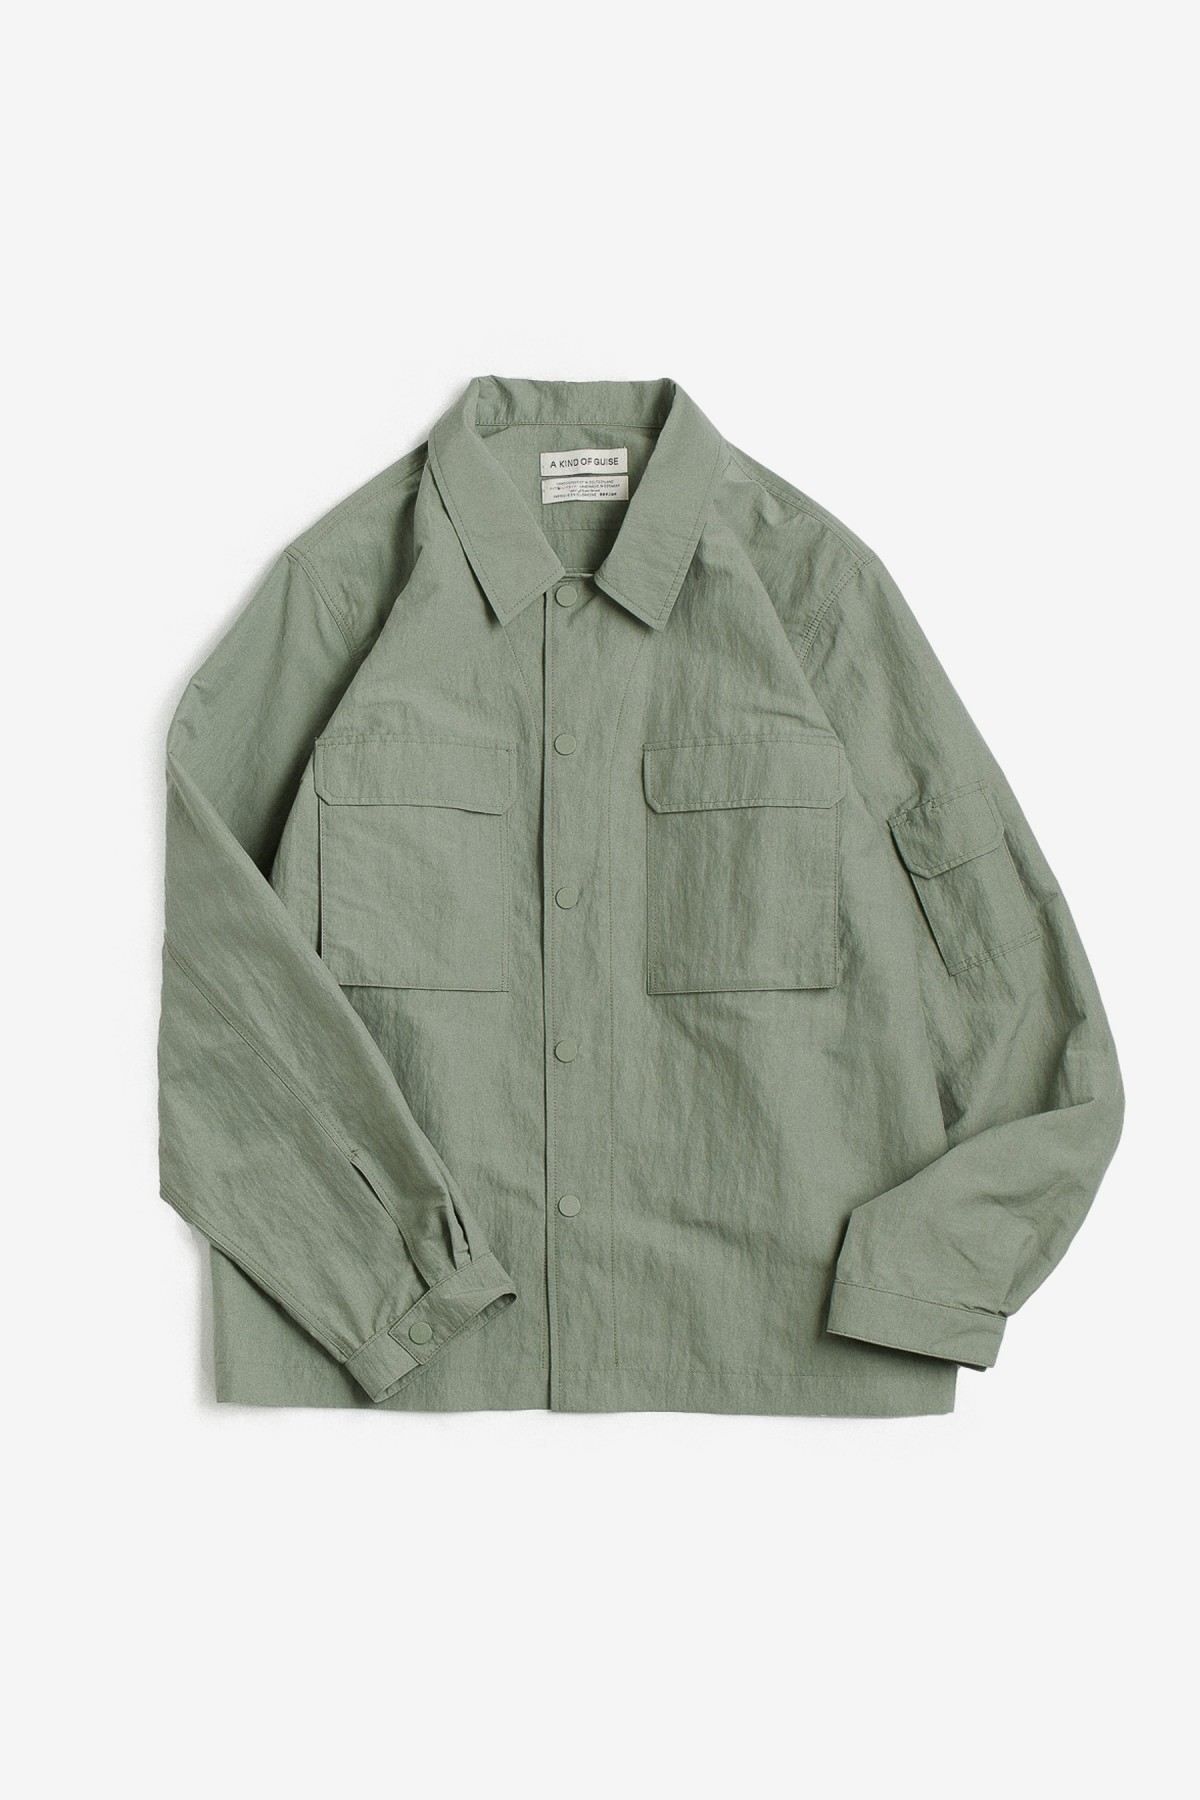 A Kind of Guise Clyde Shirt in Aloe